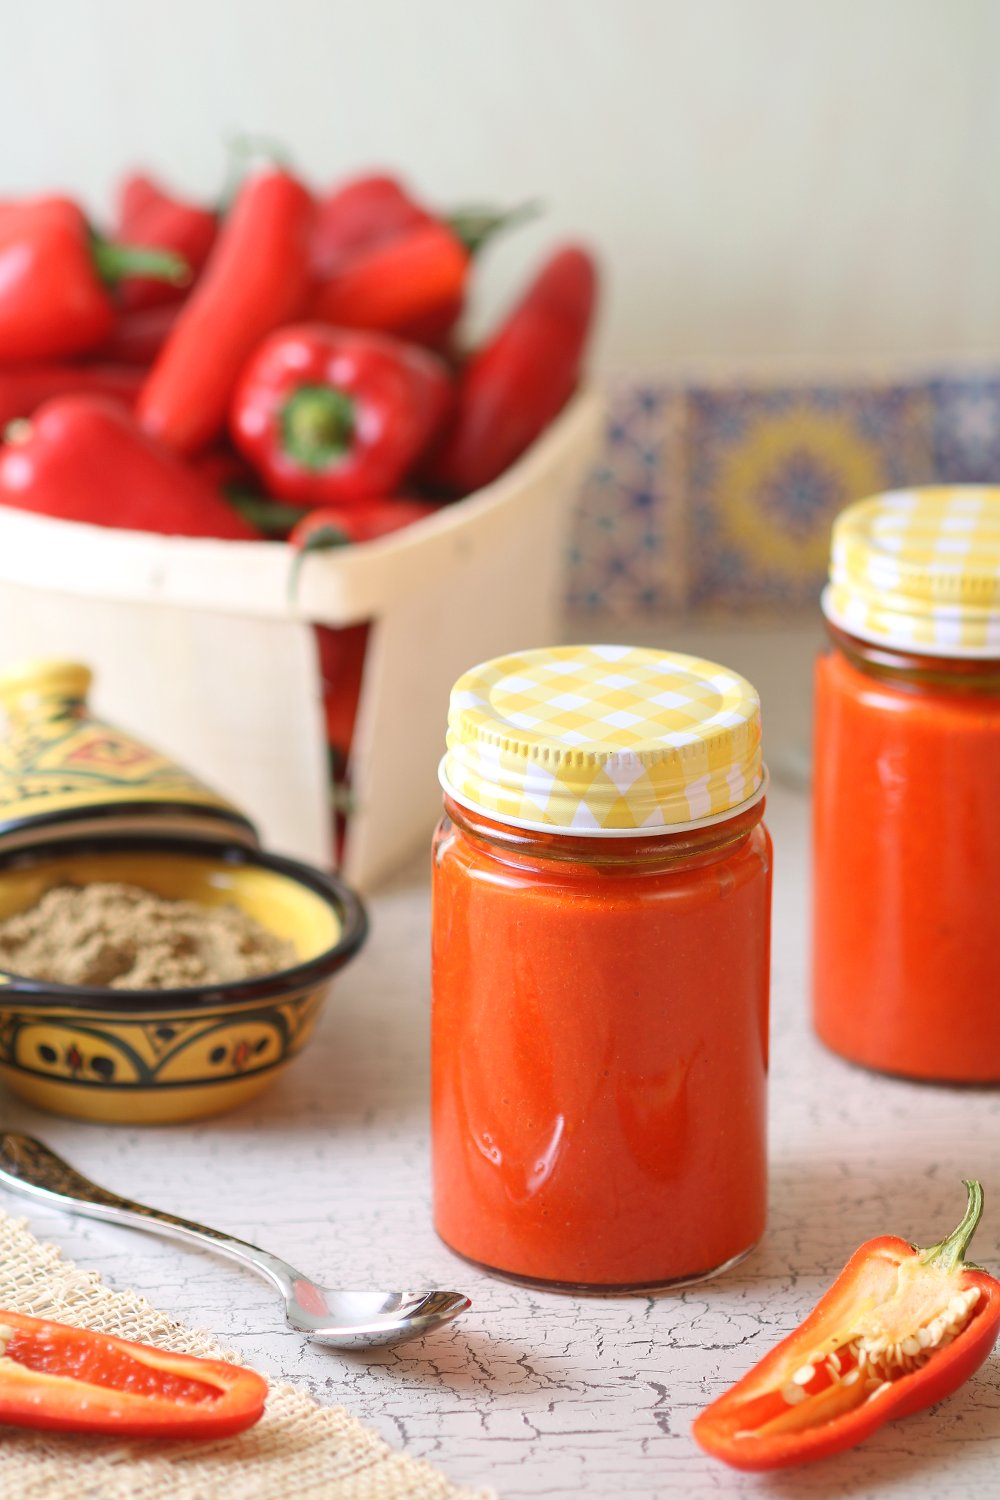 A simple recipe for tasty Homemade Tunisian Harissa paste that you can make as spicy or as mild as you want.